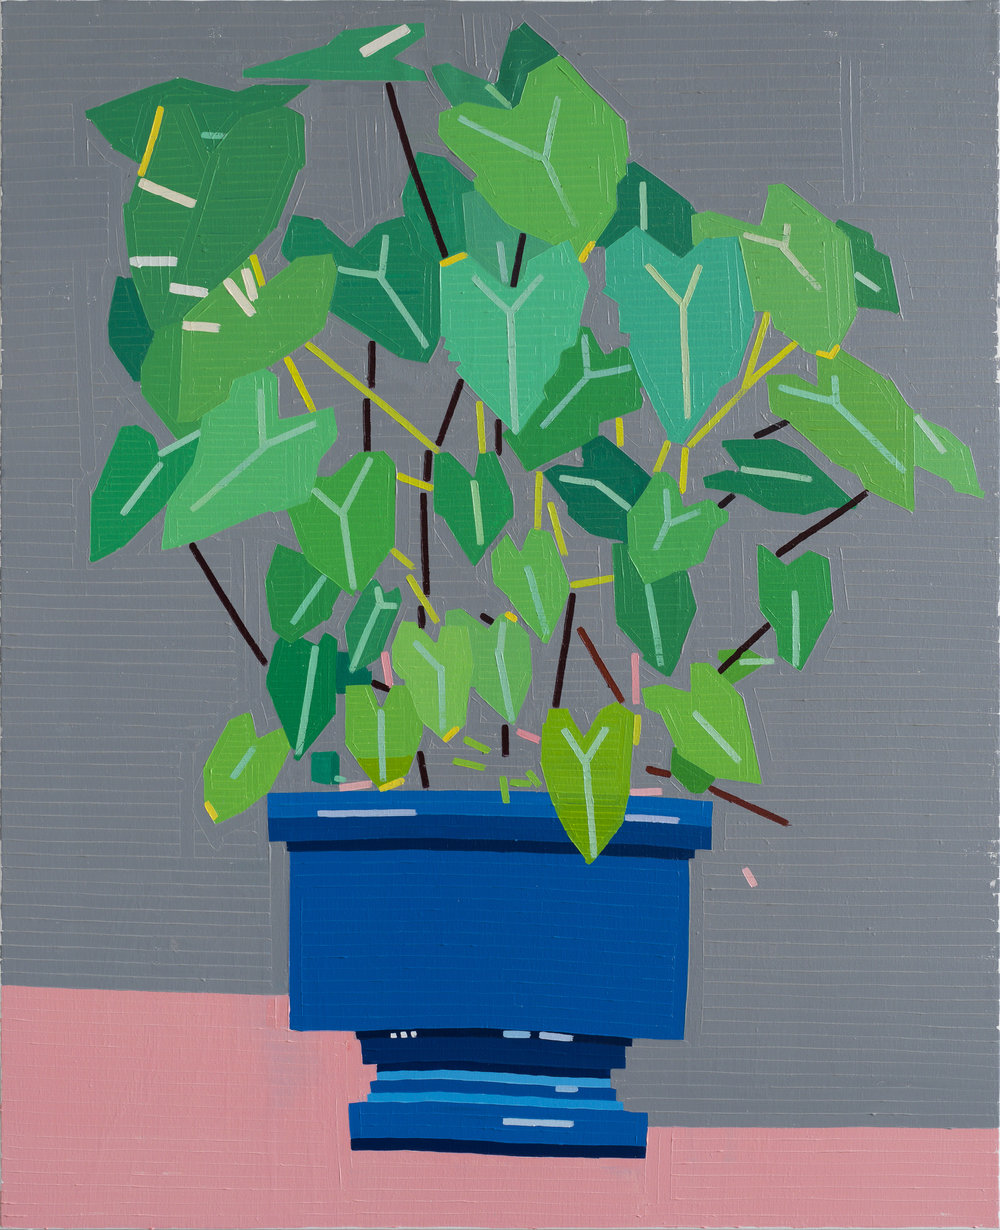 Giardini (Barbarian In The Garden), 2017 oil on linen 148 x 120 cm - 58 9/32 x 47 1/4 inches